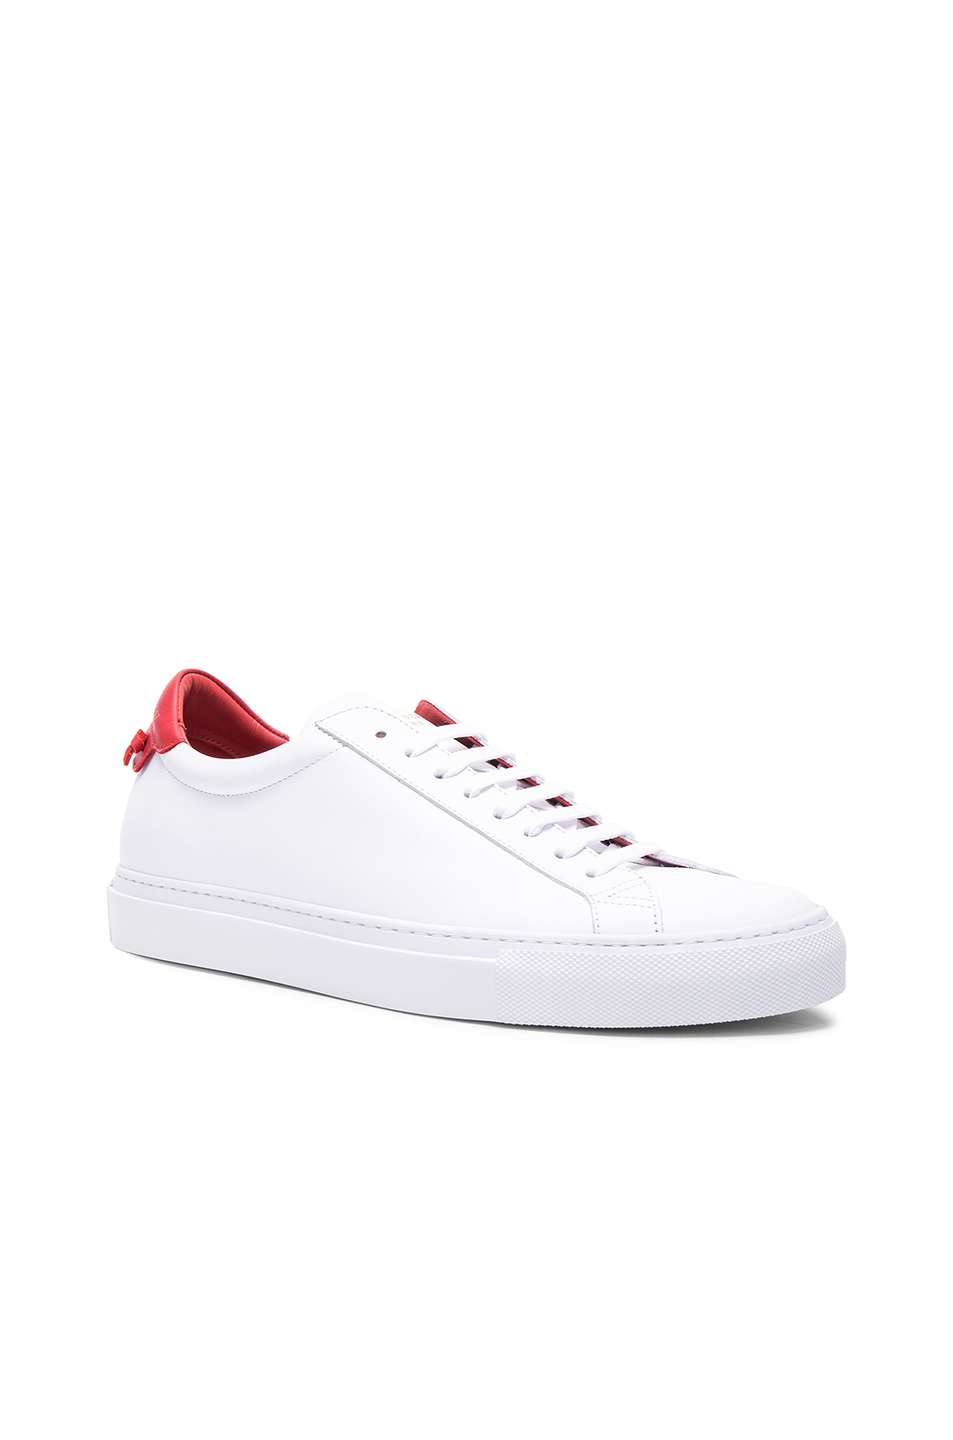 Givenchy Paris Urban Street Sneakers In White And Red In 112 Red